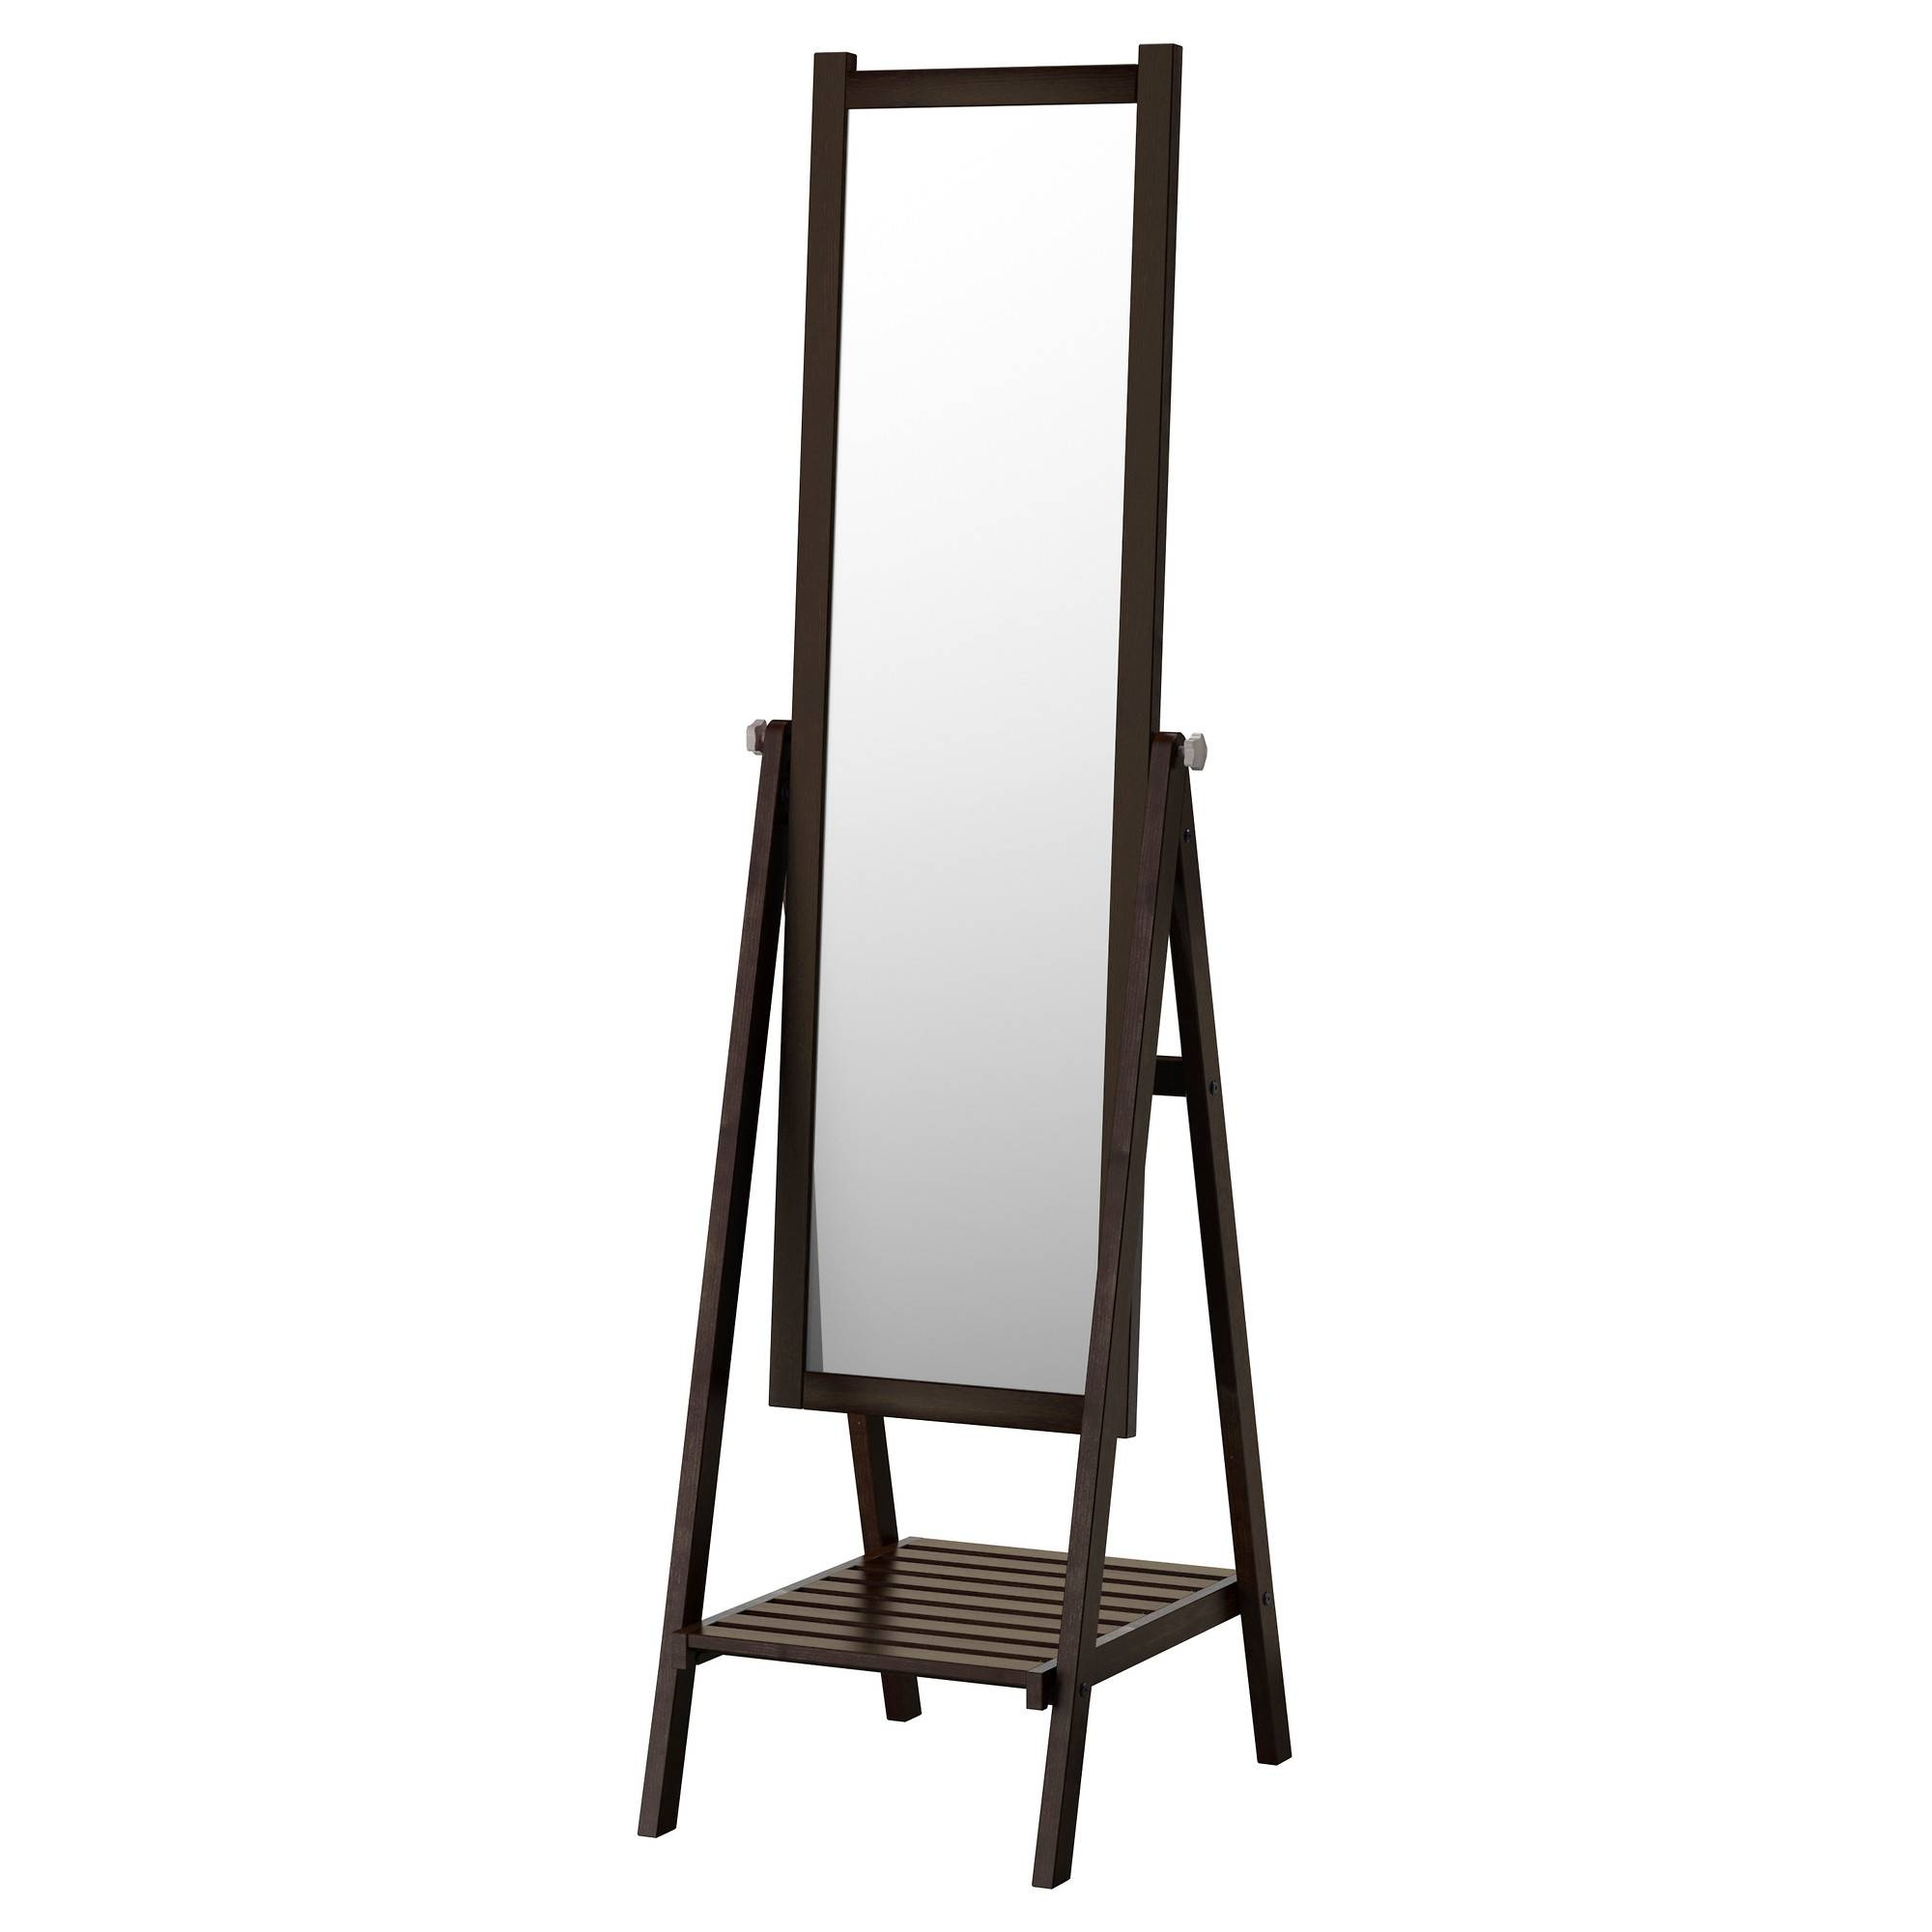 Full-Length Mirrors - Ikea within Free Standing Oval Mirrors (Image 18 of 25)